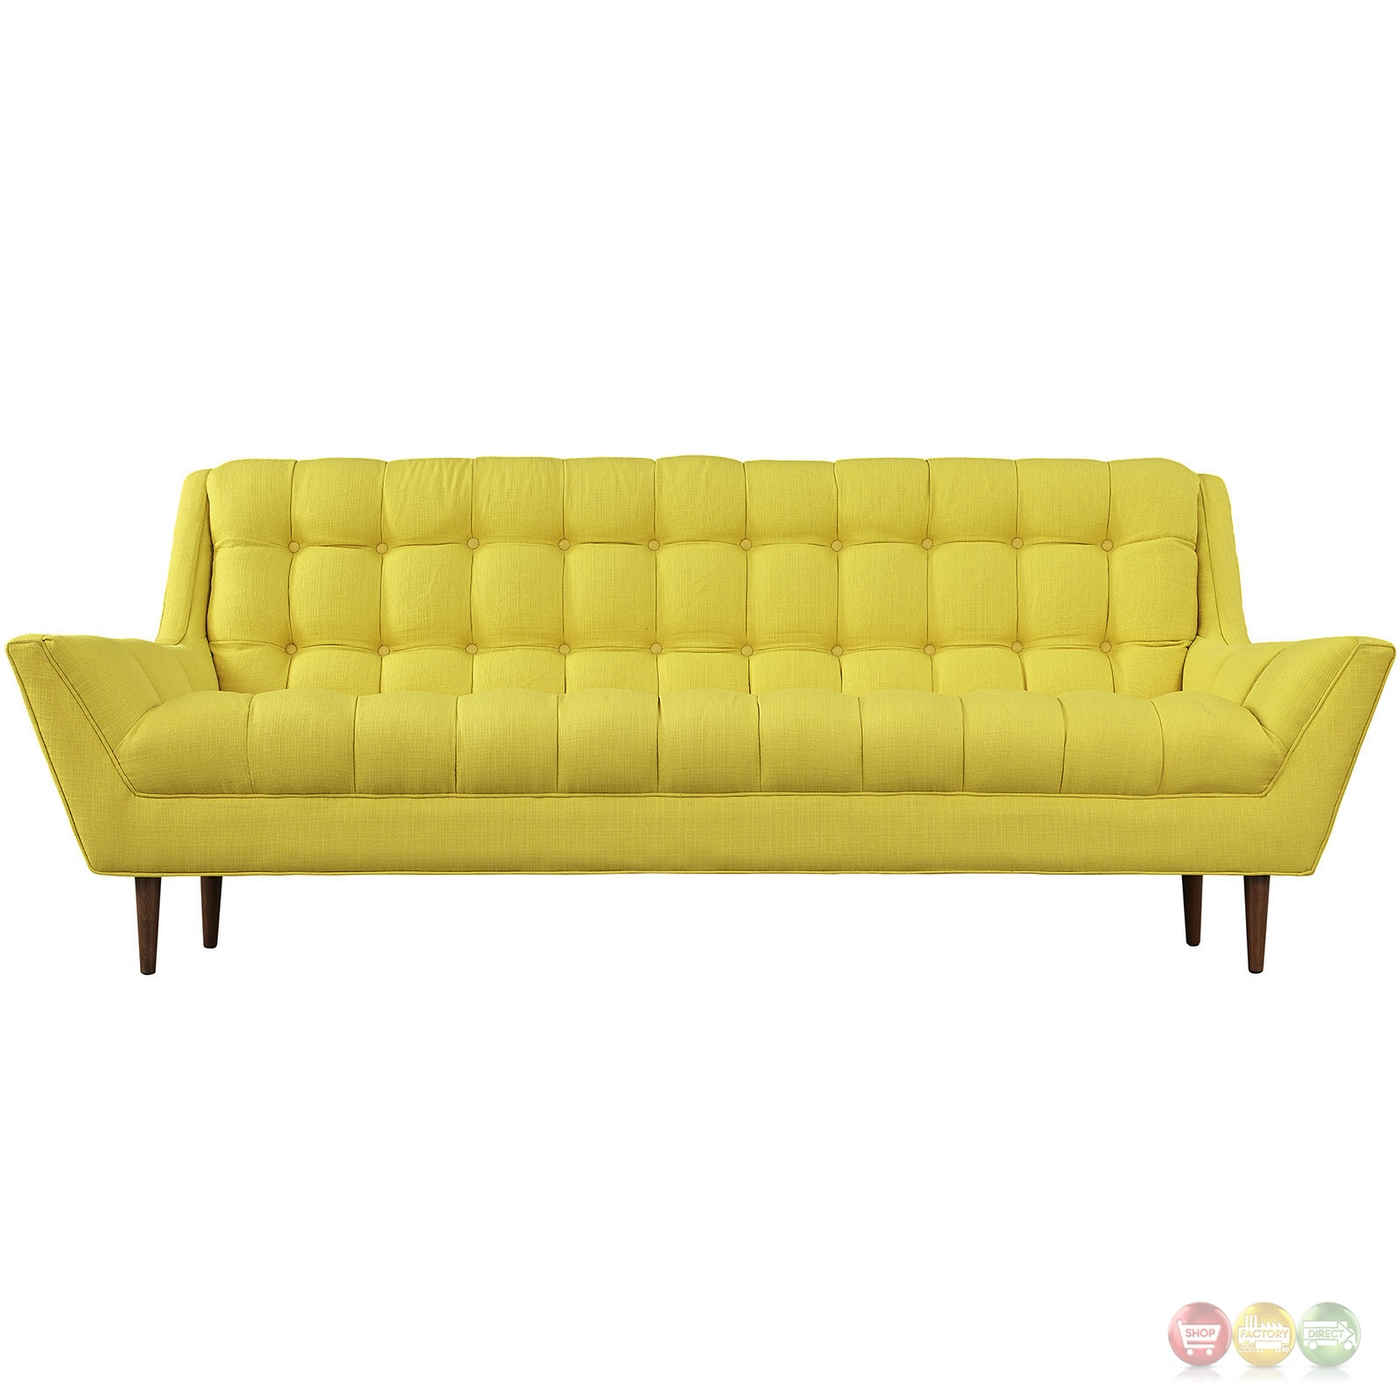 button tufted sofas baker sofa bed response contemporary upholstered sunny